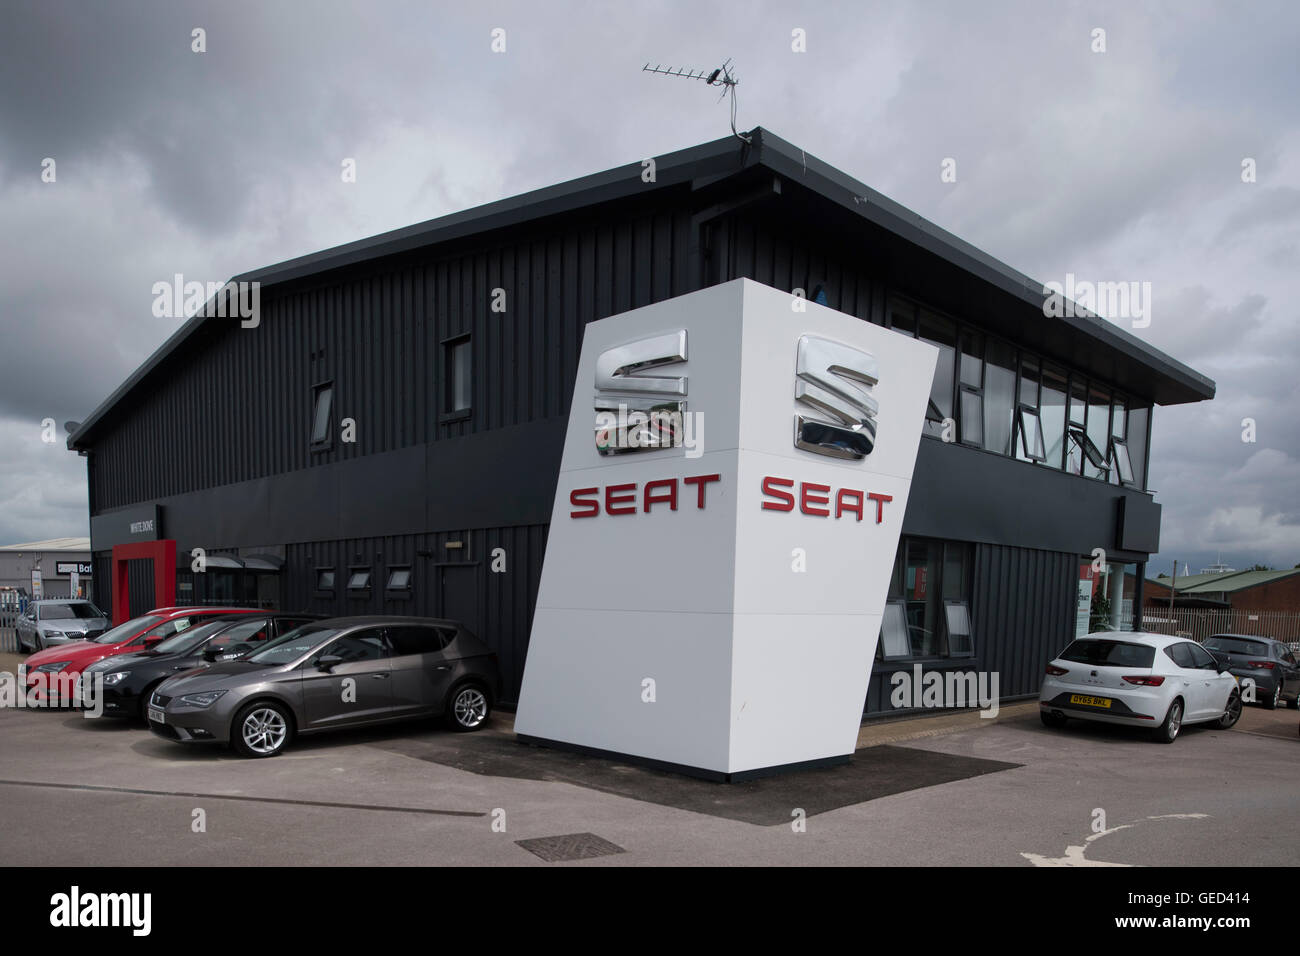 Seat car garage sign logo stock photo 112155936 alamy for Garage seat lens